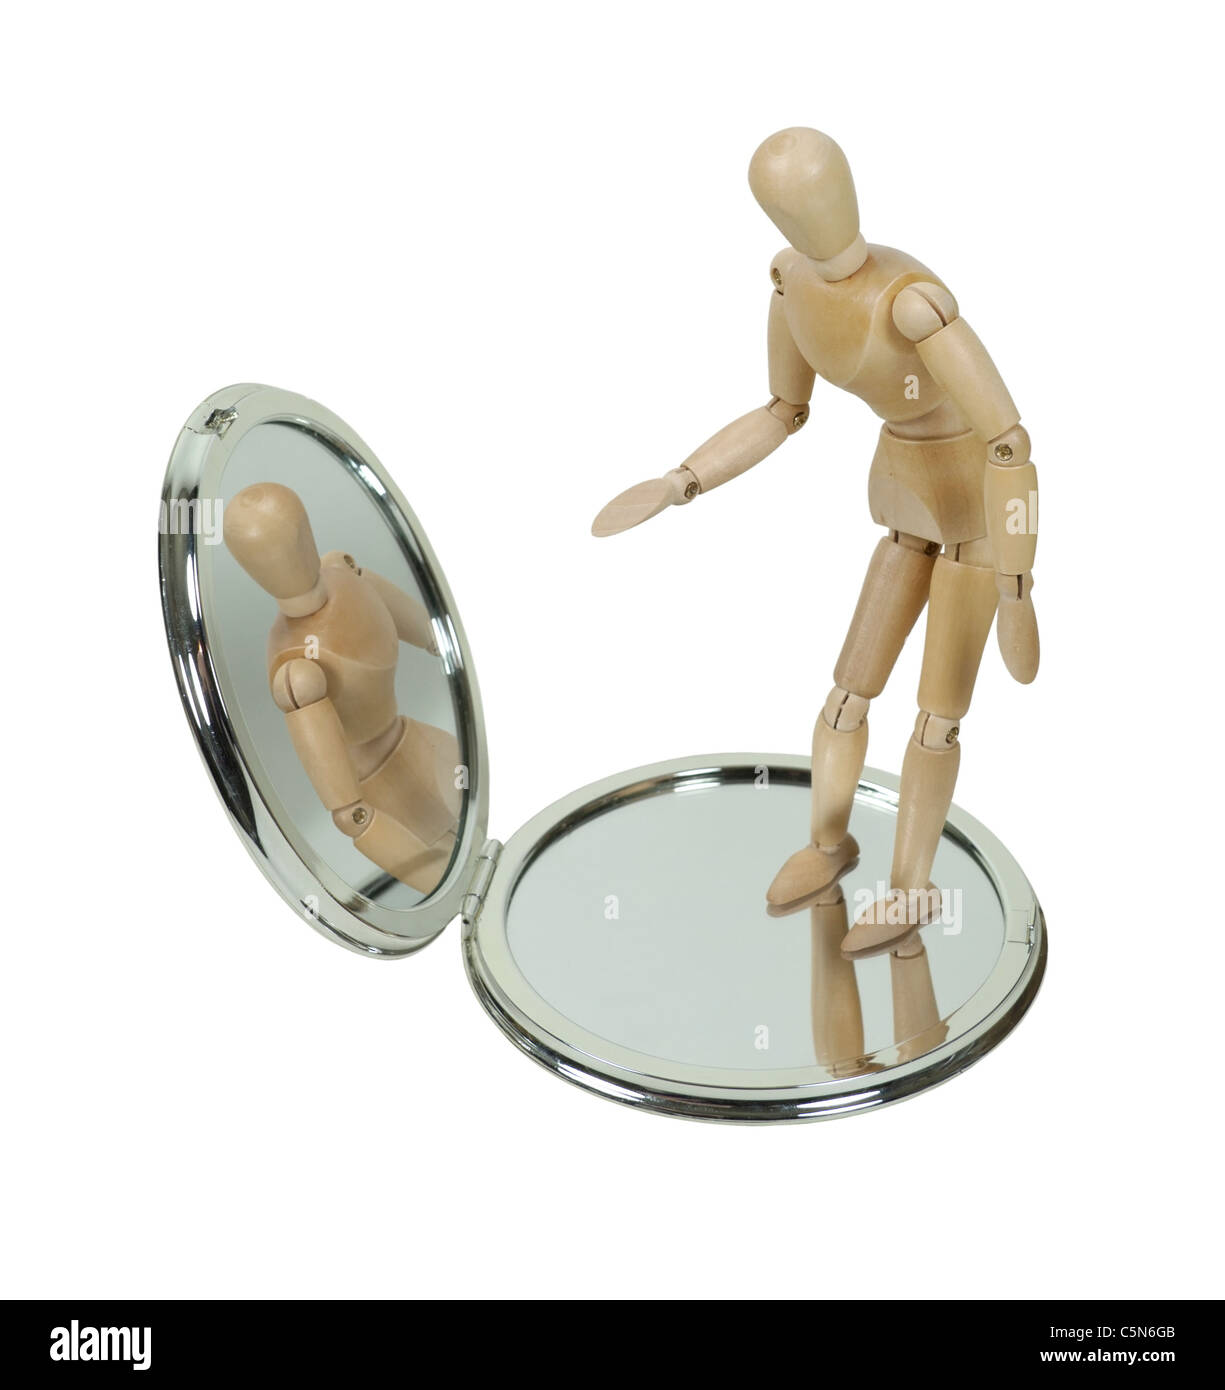 Wooden Model Observing Self in Compact Mirror - path included - Stock Image